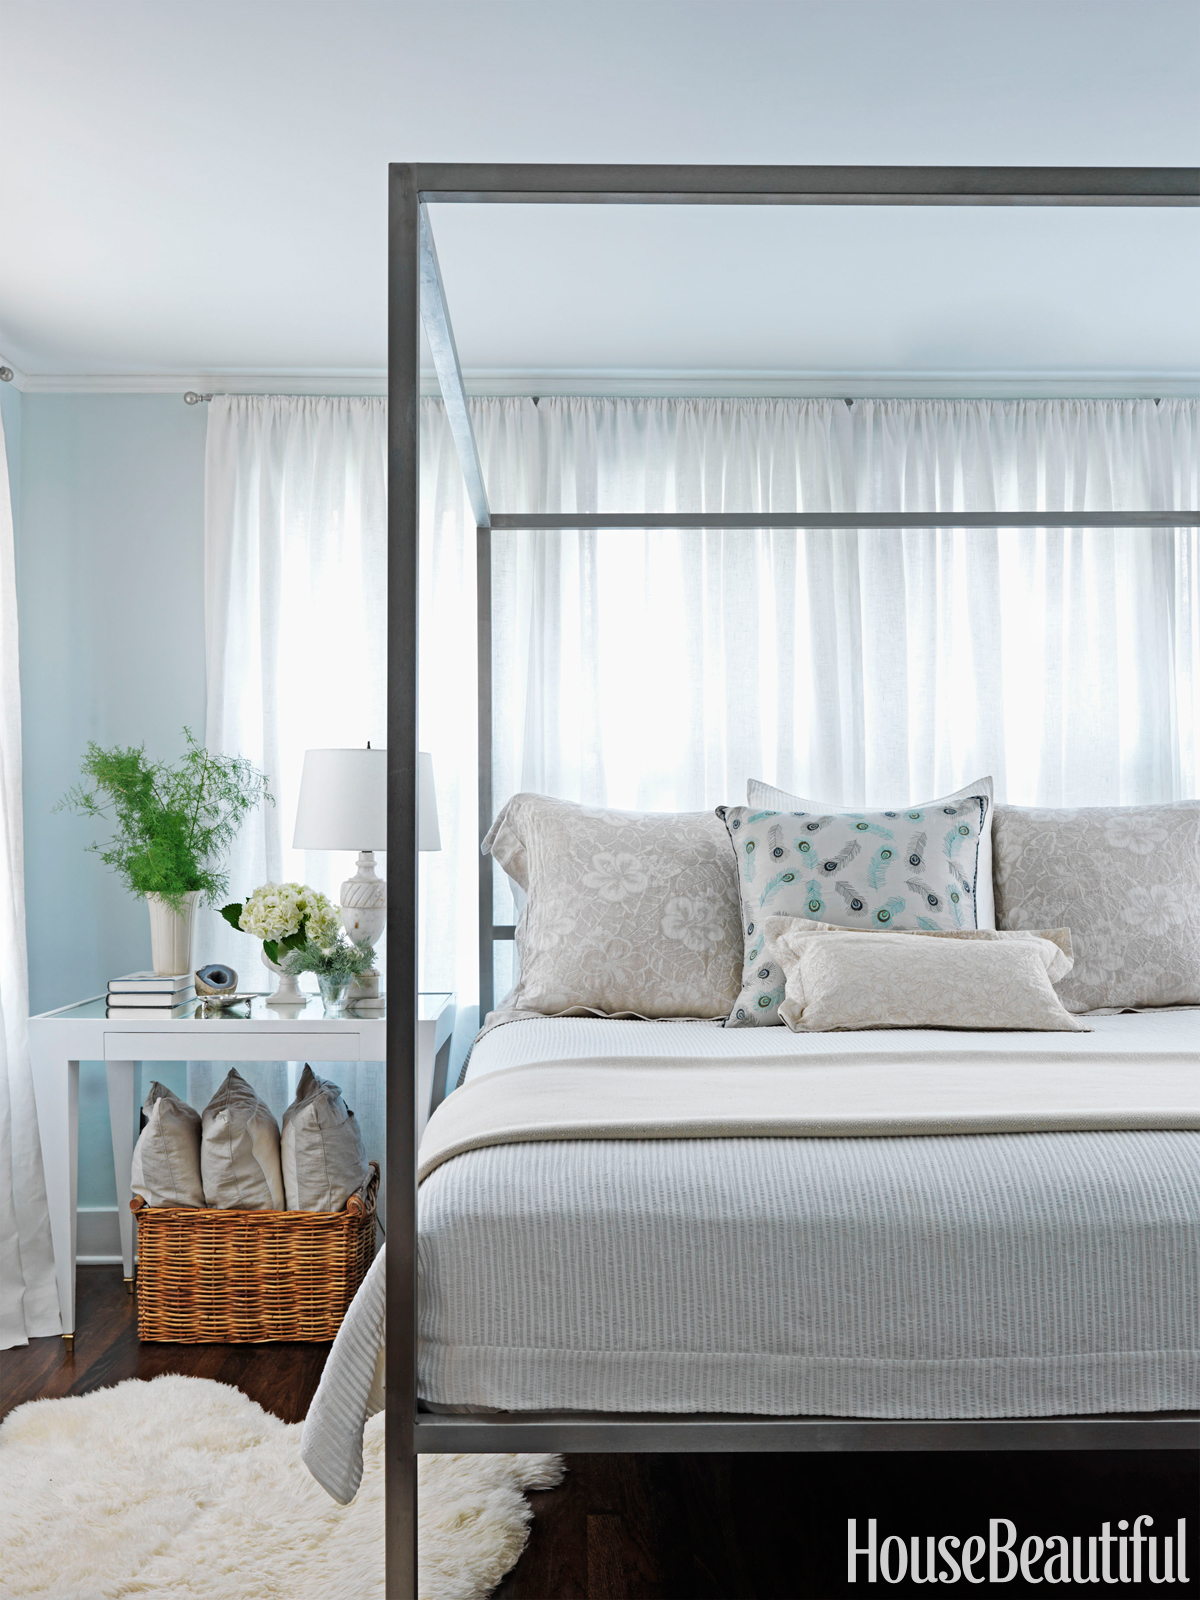 Organize Bedroom 7 quick ways to organize your bedroom this spring